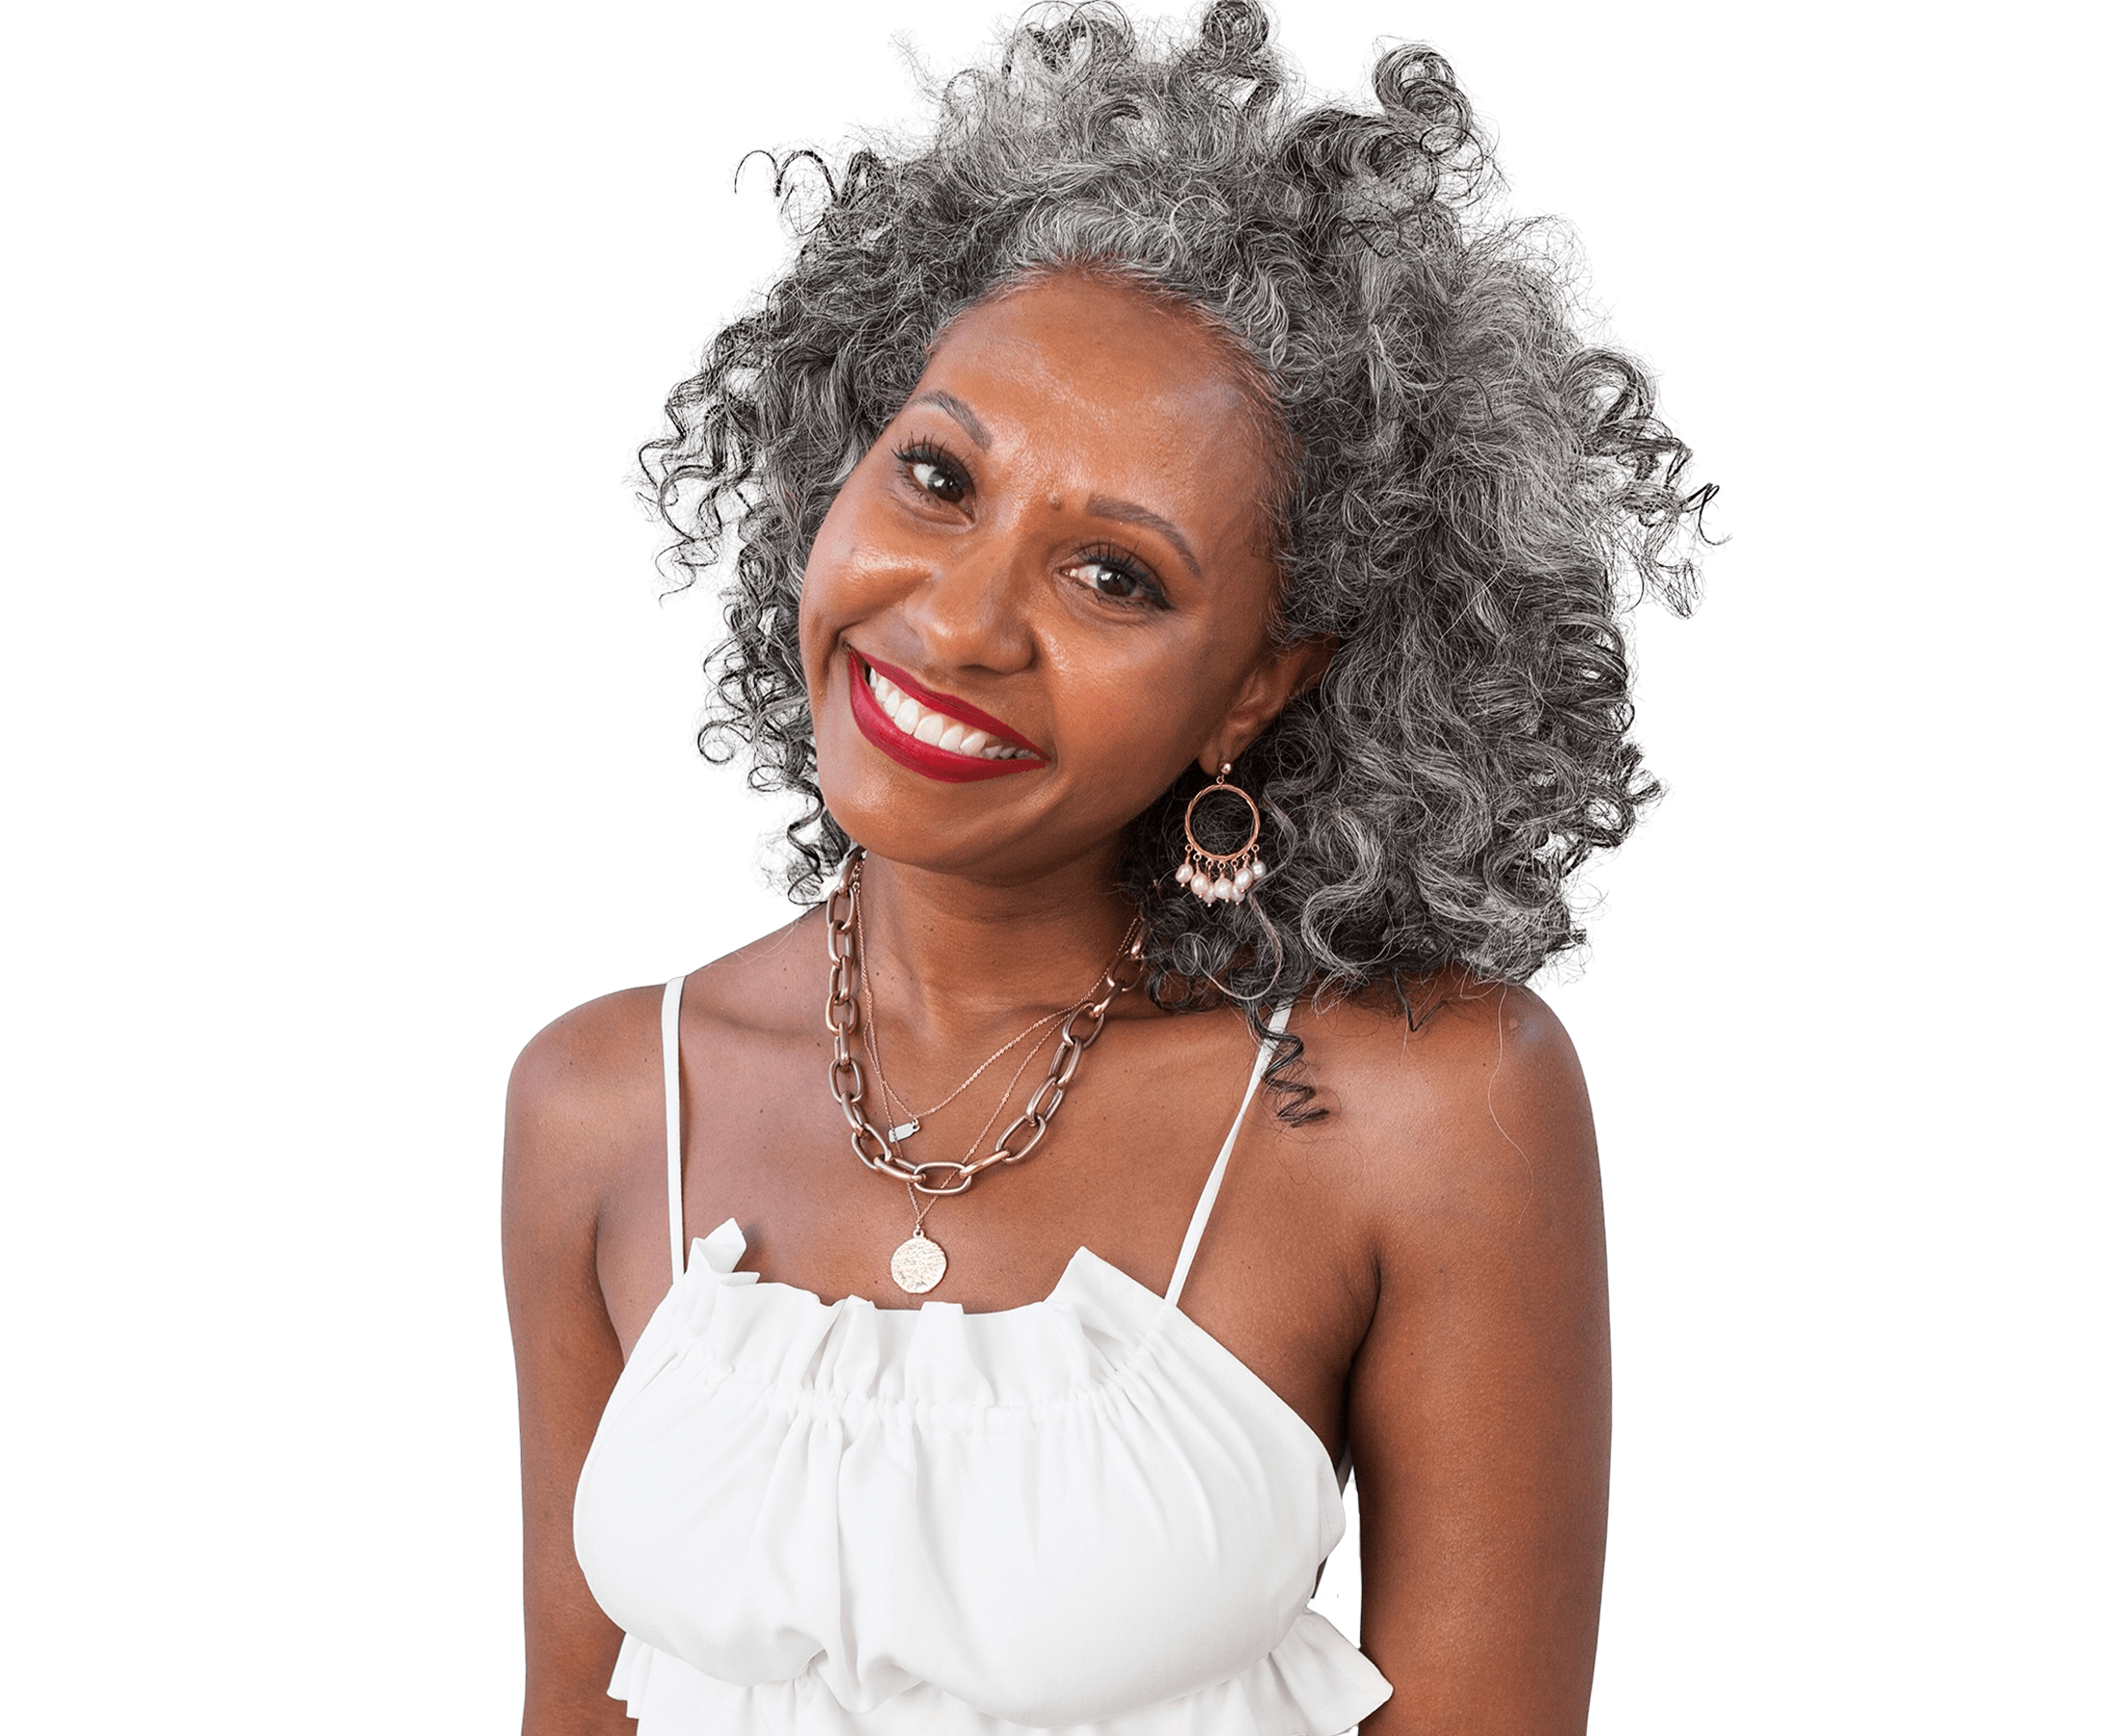 Woman smiling with silver curly hair